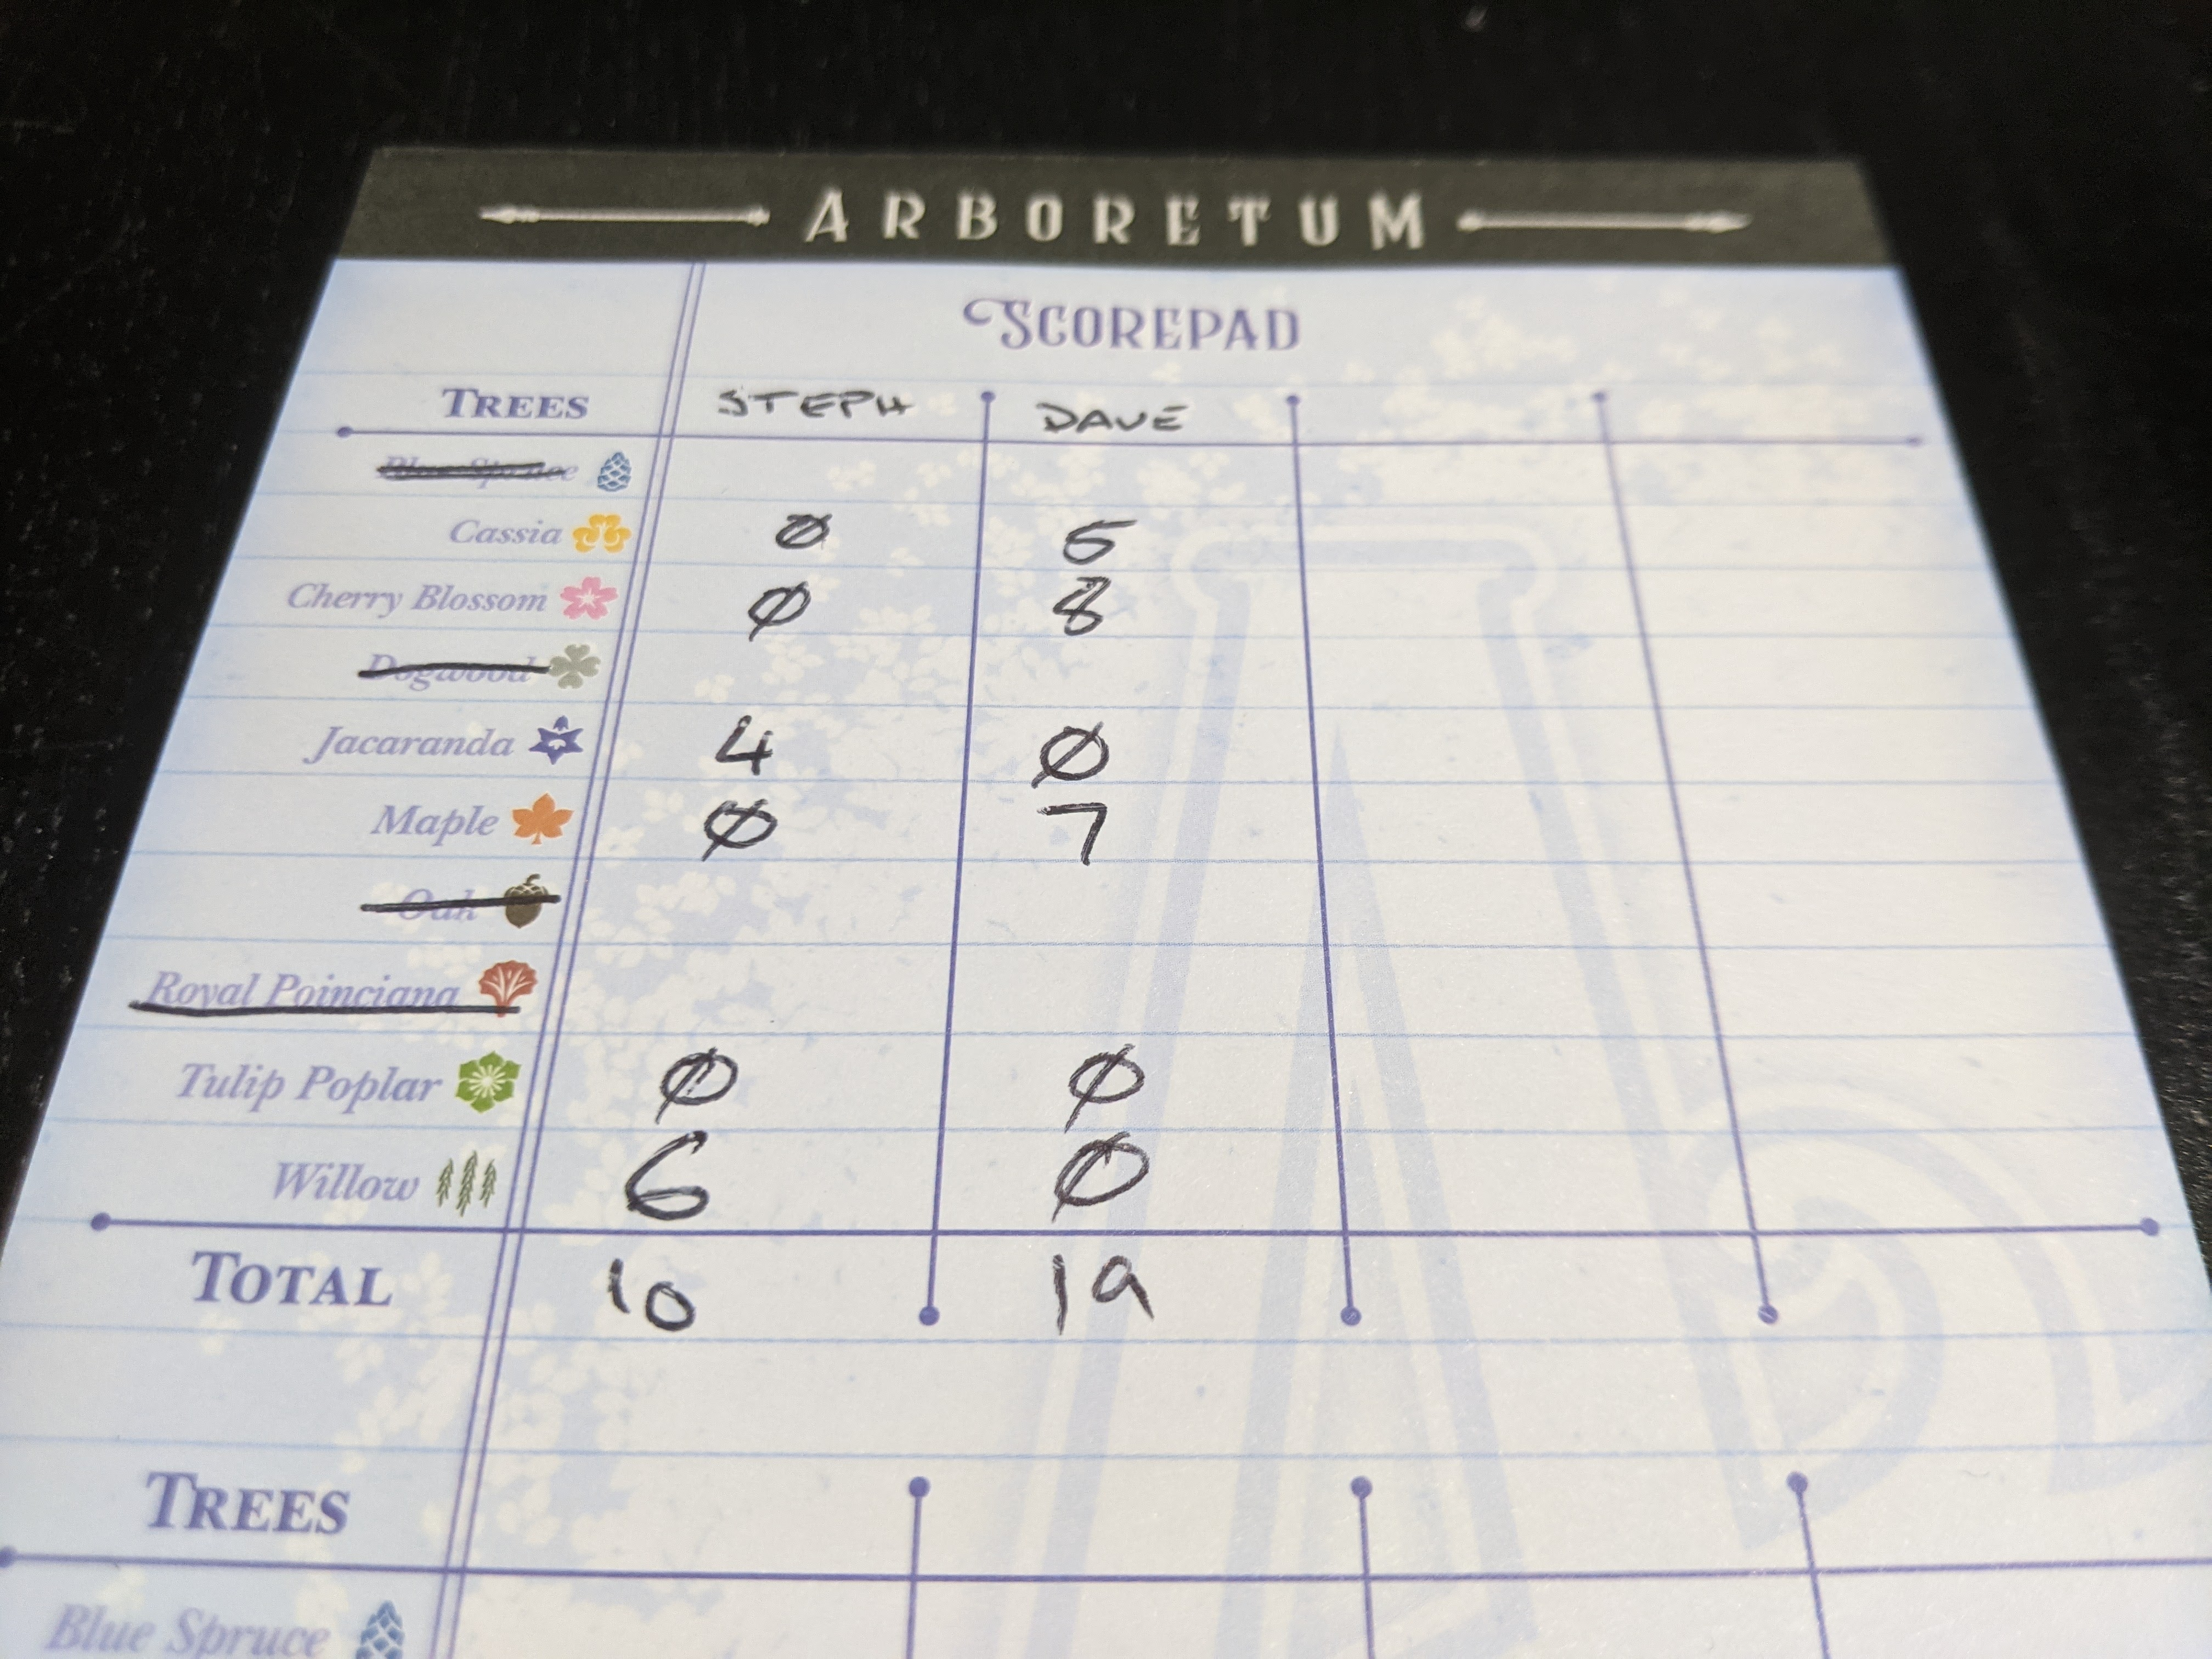 Scorecard from our game of Arboretum. Dave won 19-10.